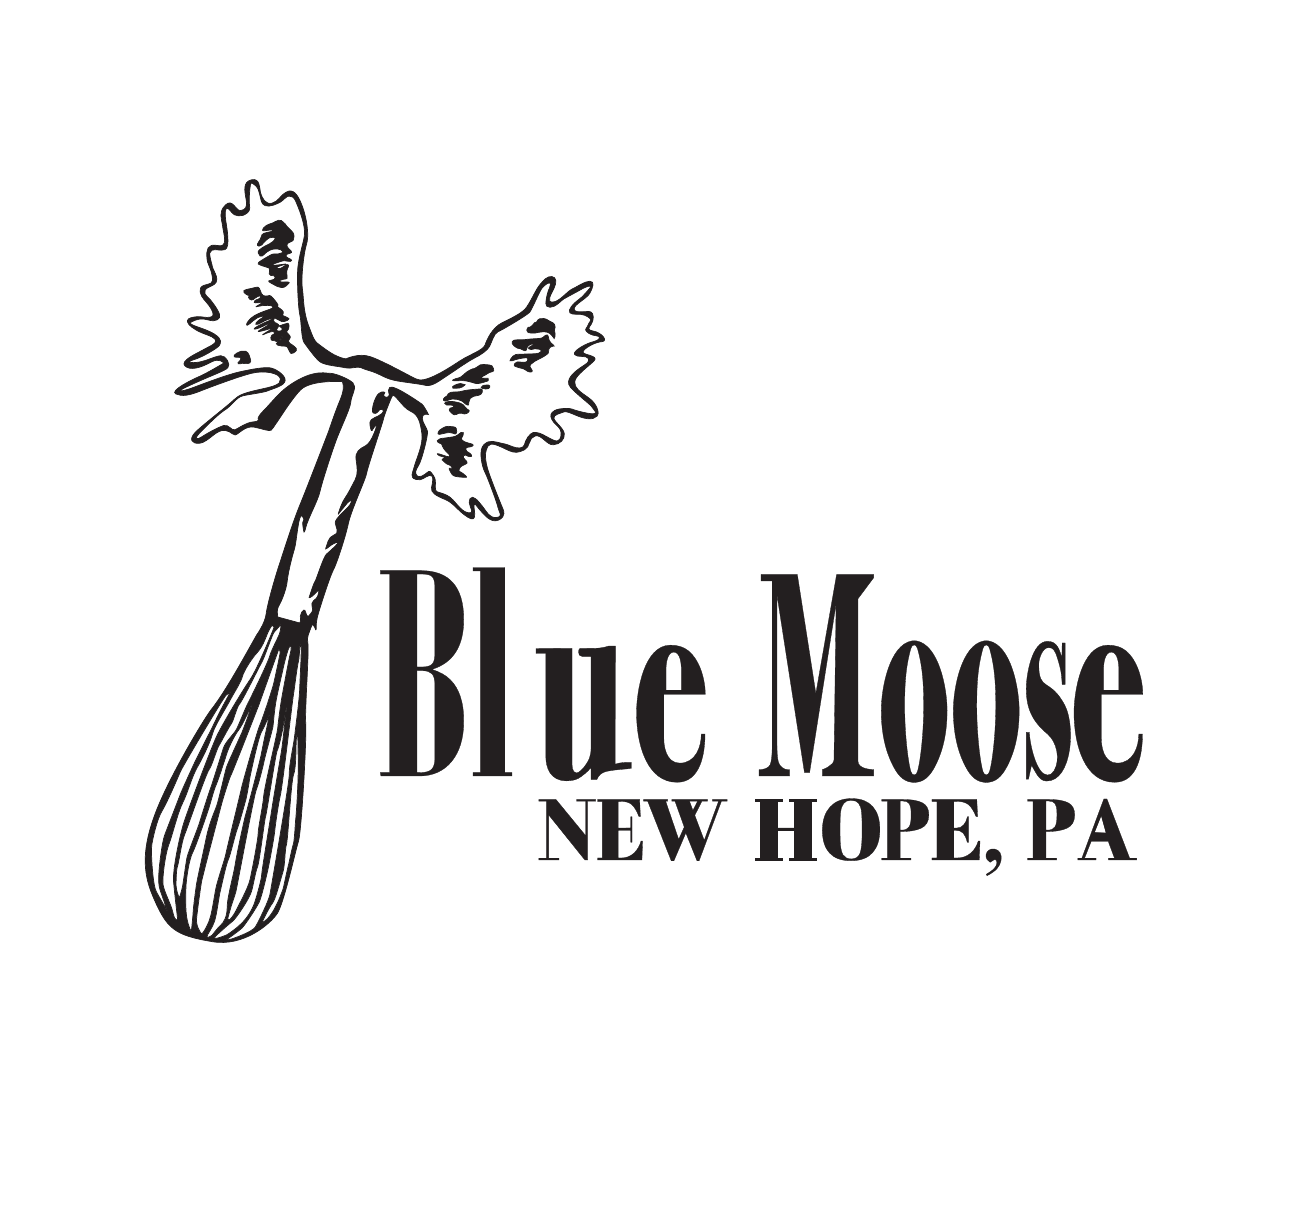 Cafe Blue Moose